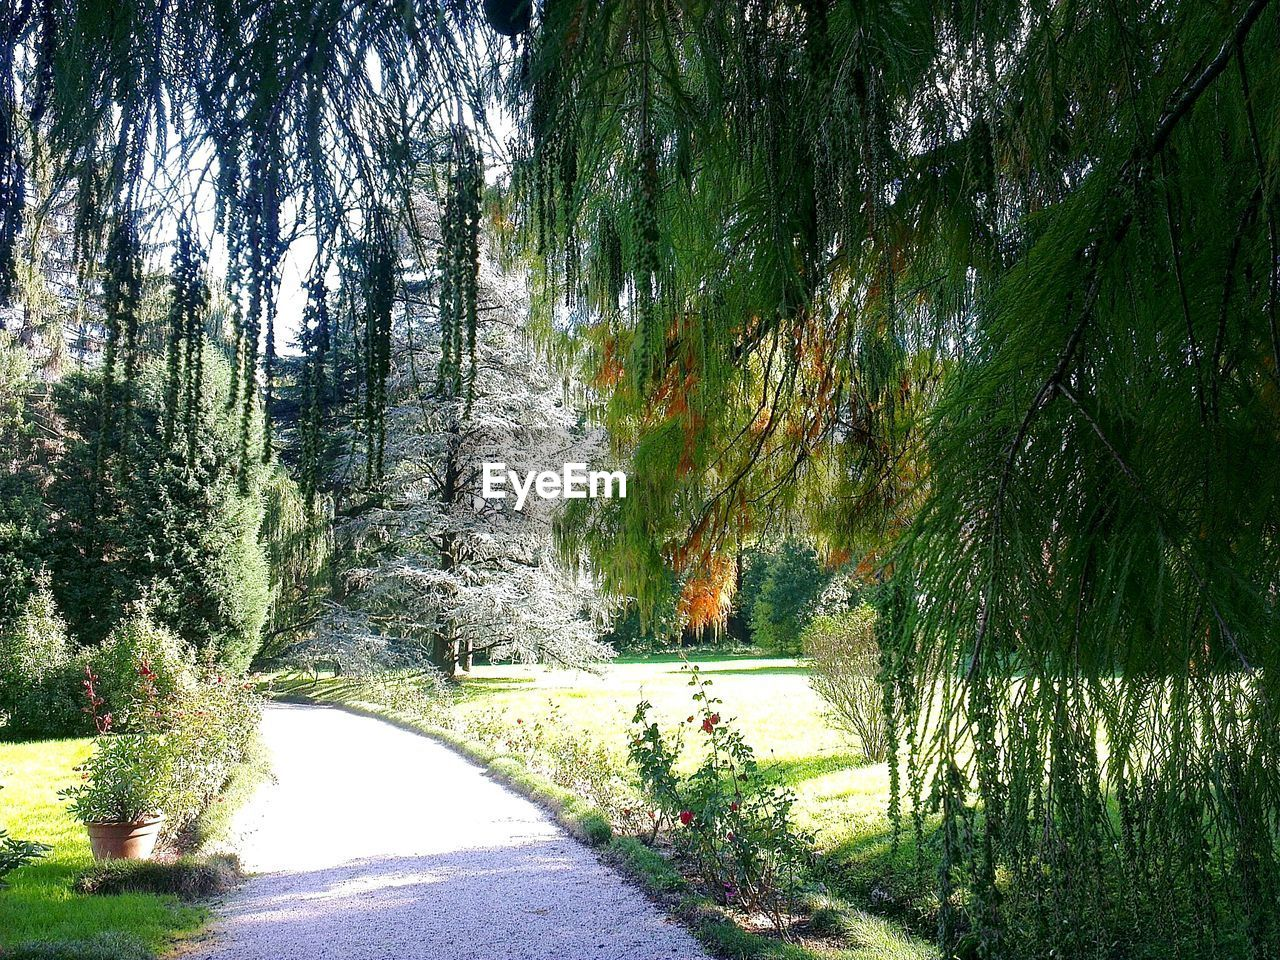 nature, tree, tranquil scene, tranquility, beauty in nature, scenics, the way forward, road, growth, no people, outdoors, day, grass, green color, plant, forest, transportation, landscape, water, sky